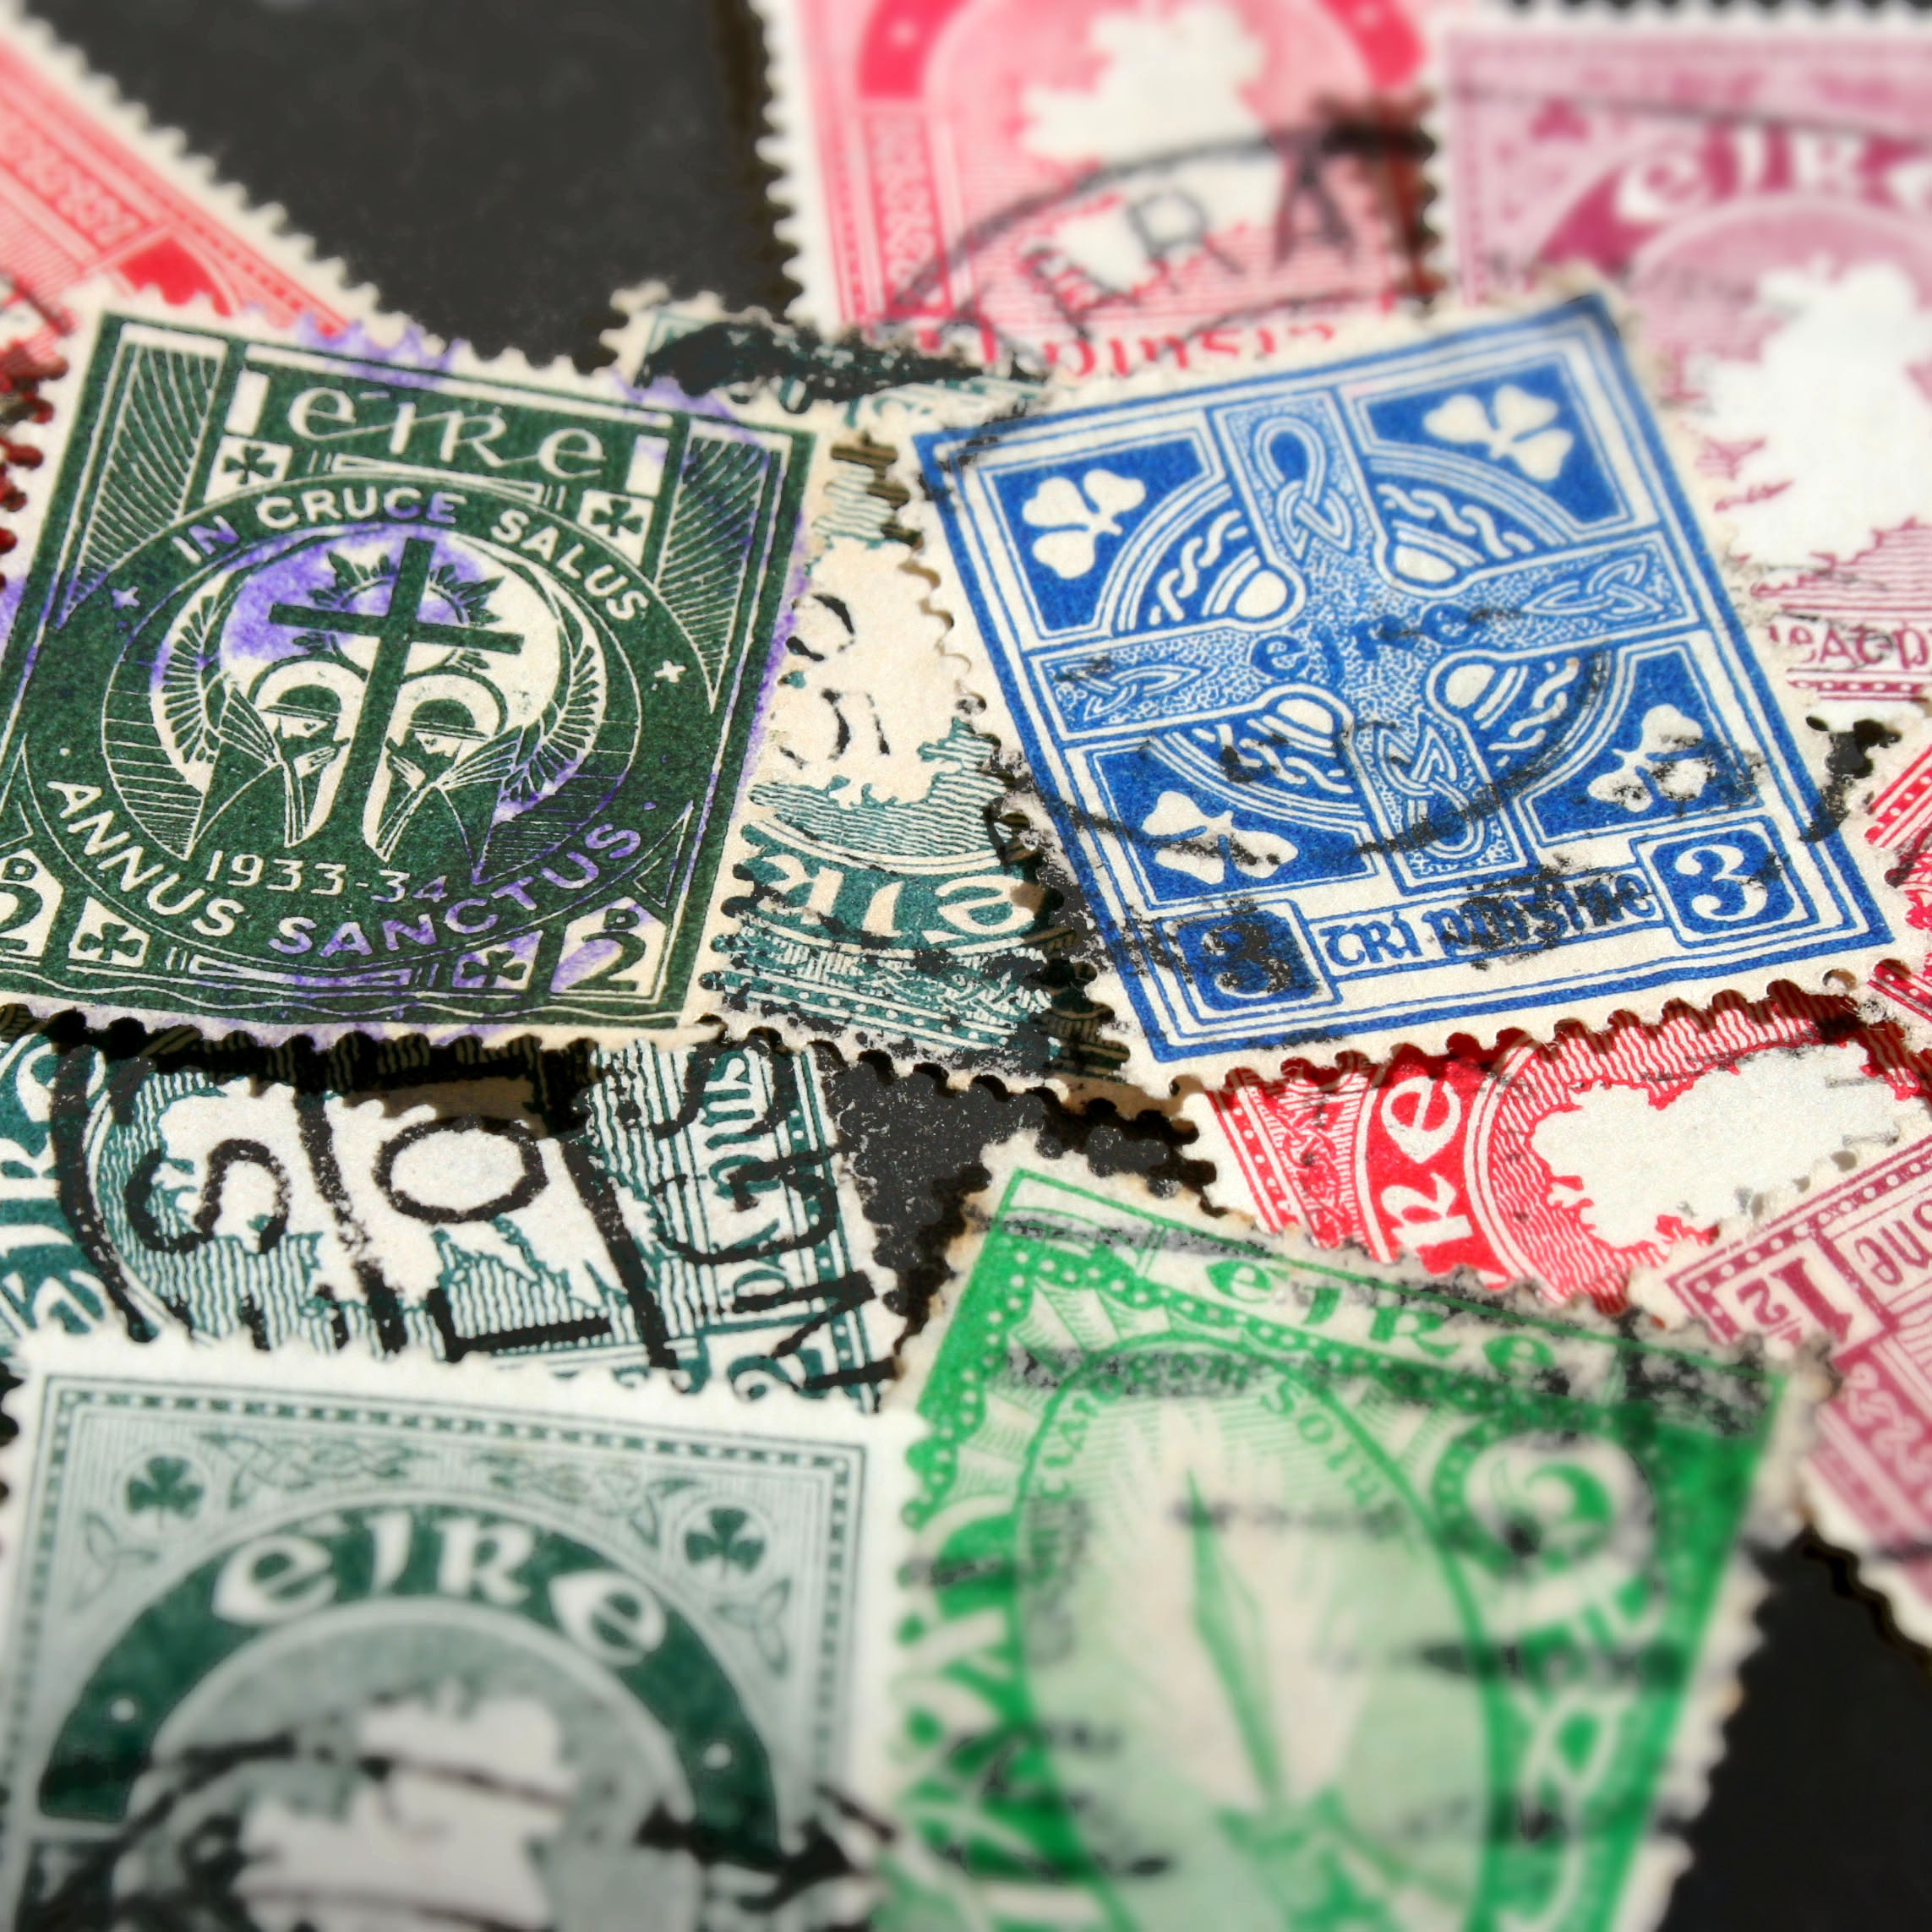 Stamps from Ireland 1933